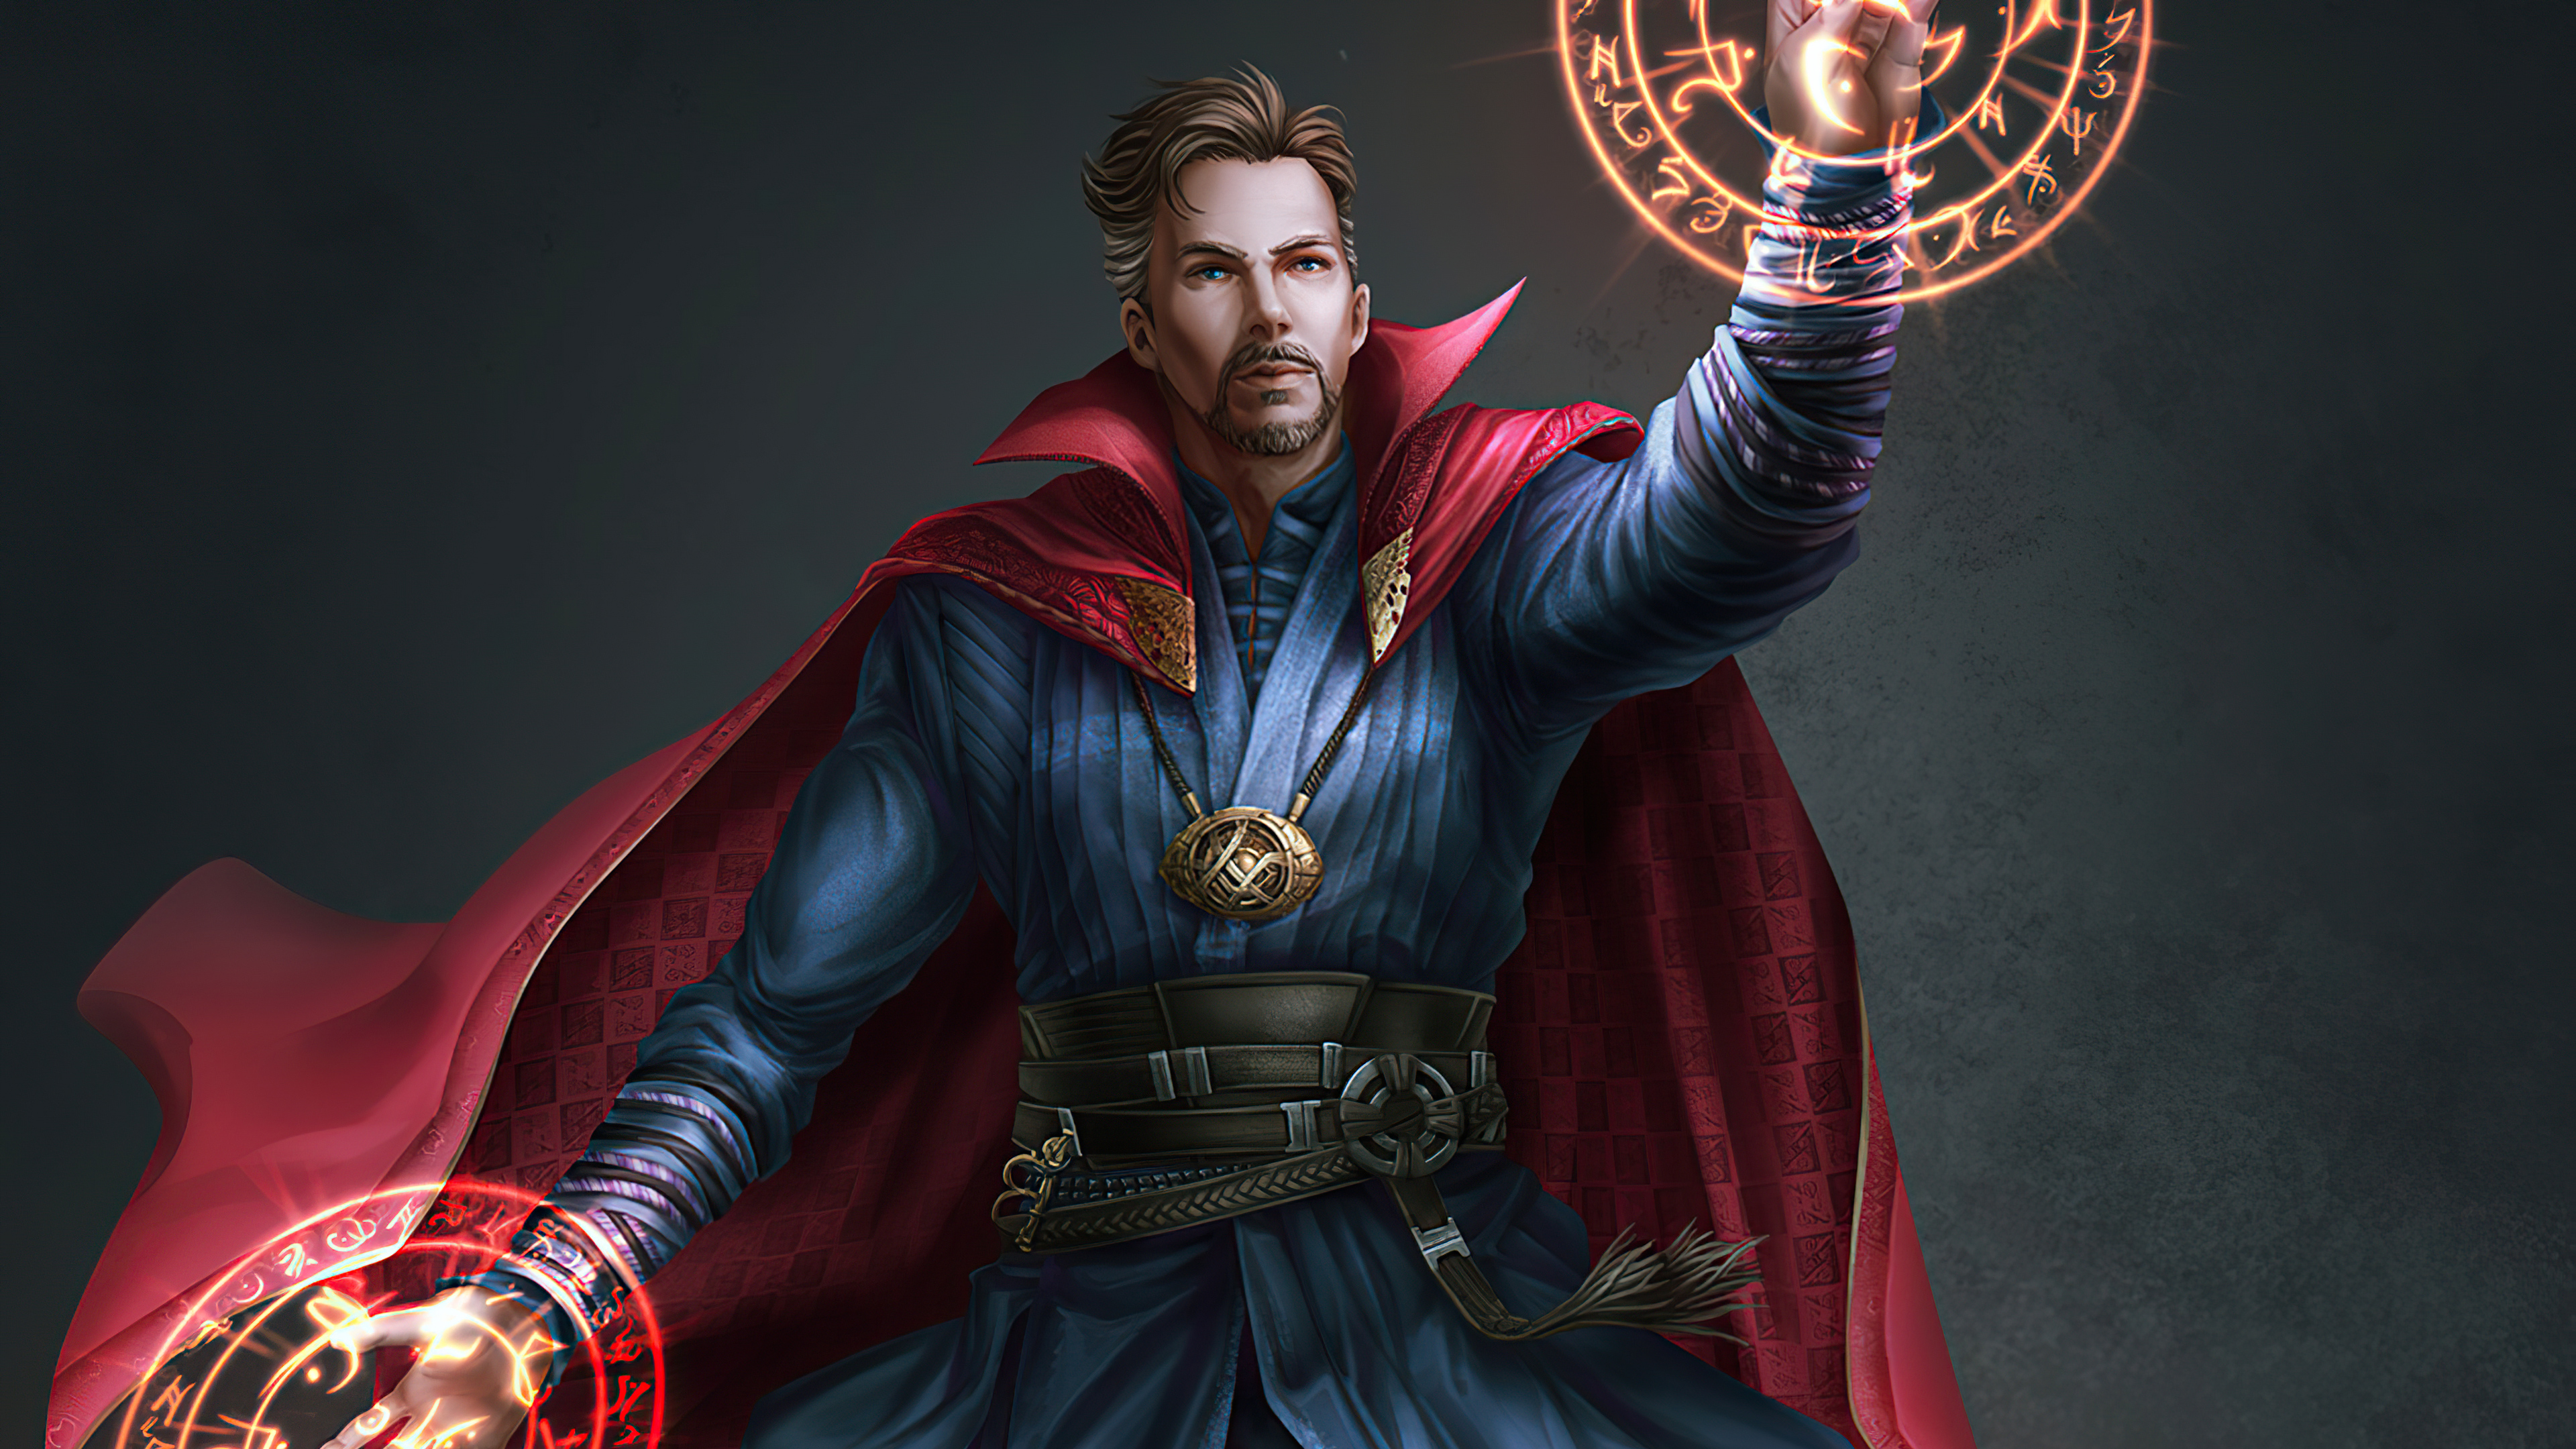 doctor strange new artwork 2020 4k 1604347933 - Doctor Strange New Artwork 2020 4k - Doctor Strange New Artwork 2020 4k wallpapers